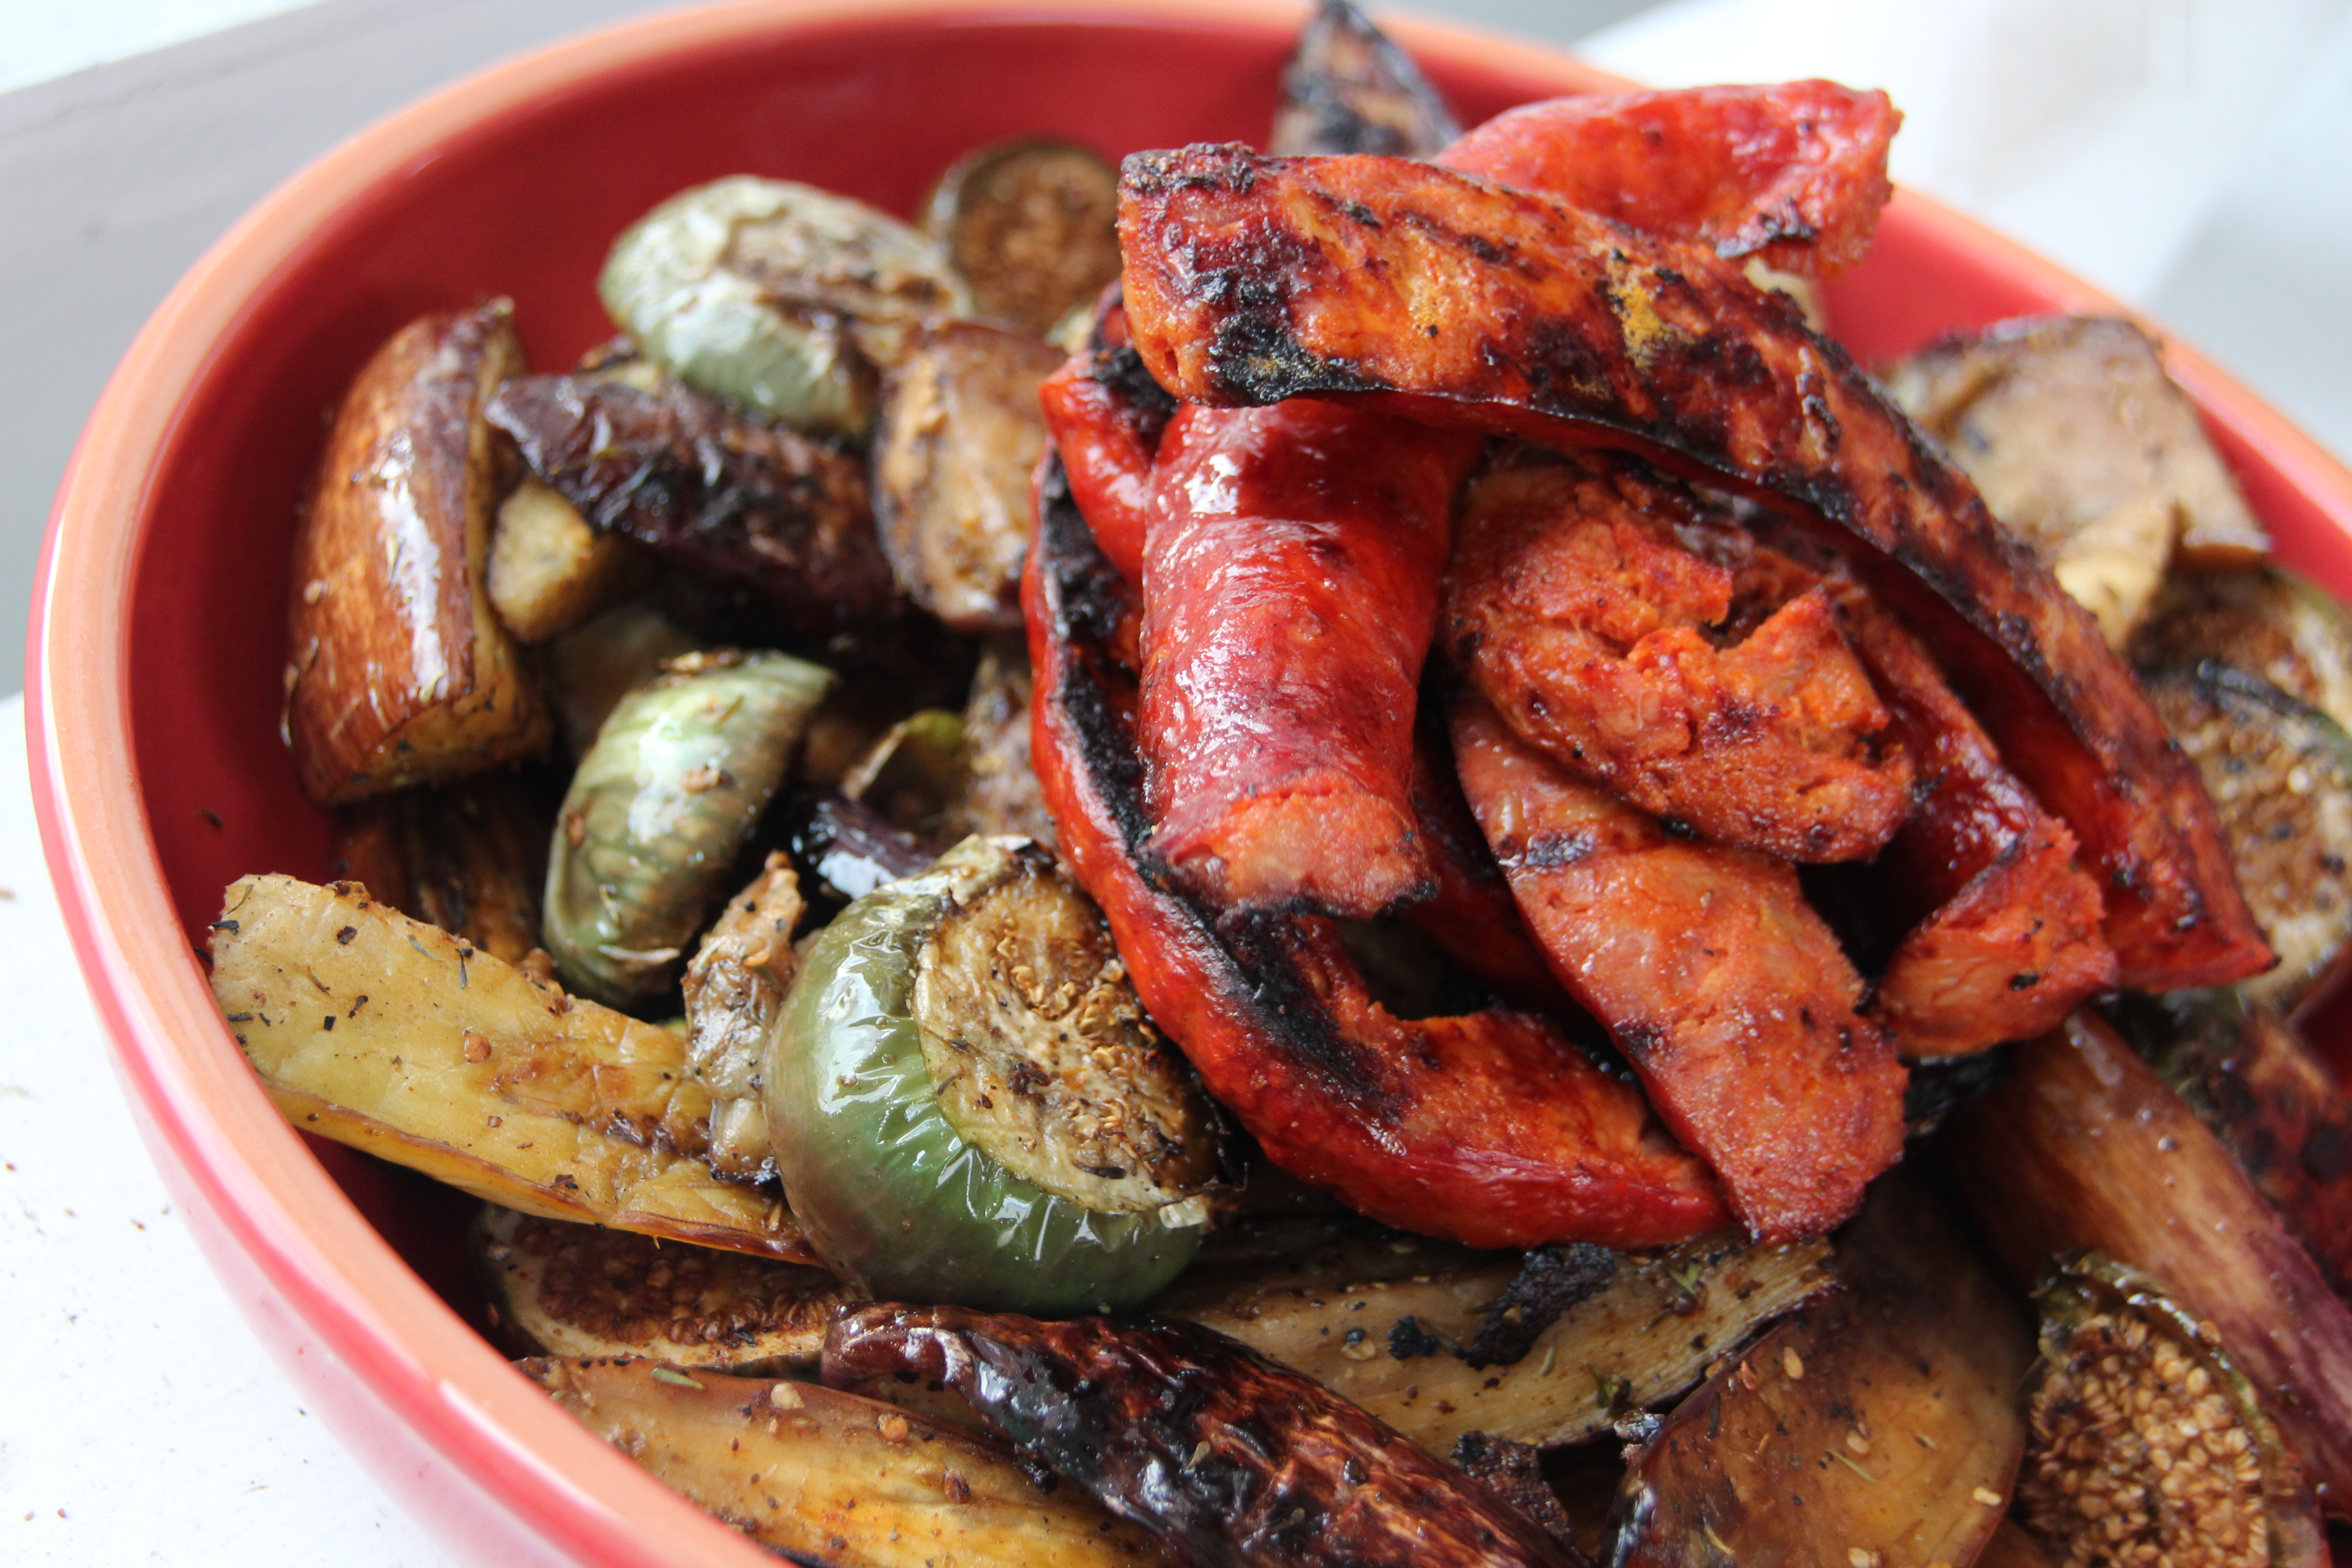 Grilled Eggplant, sausage, grilled sausage recipe, French, French recipe, easy summertime recipe